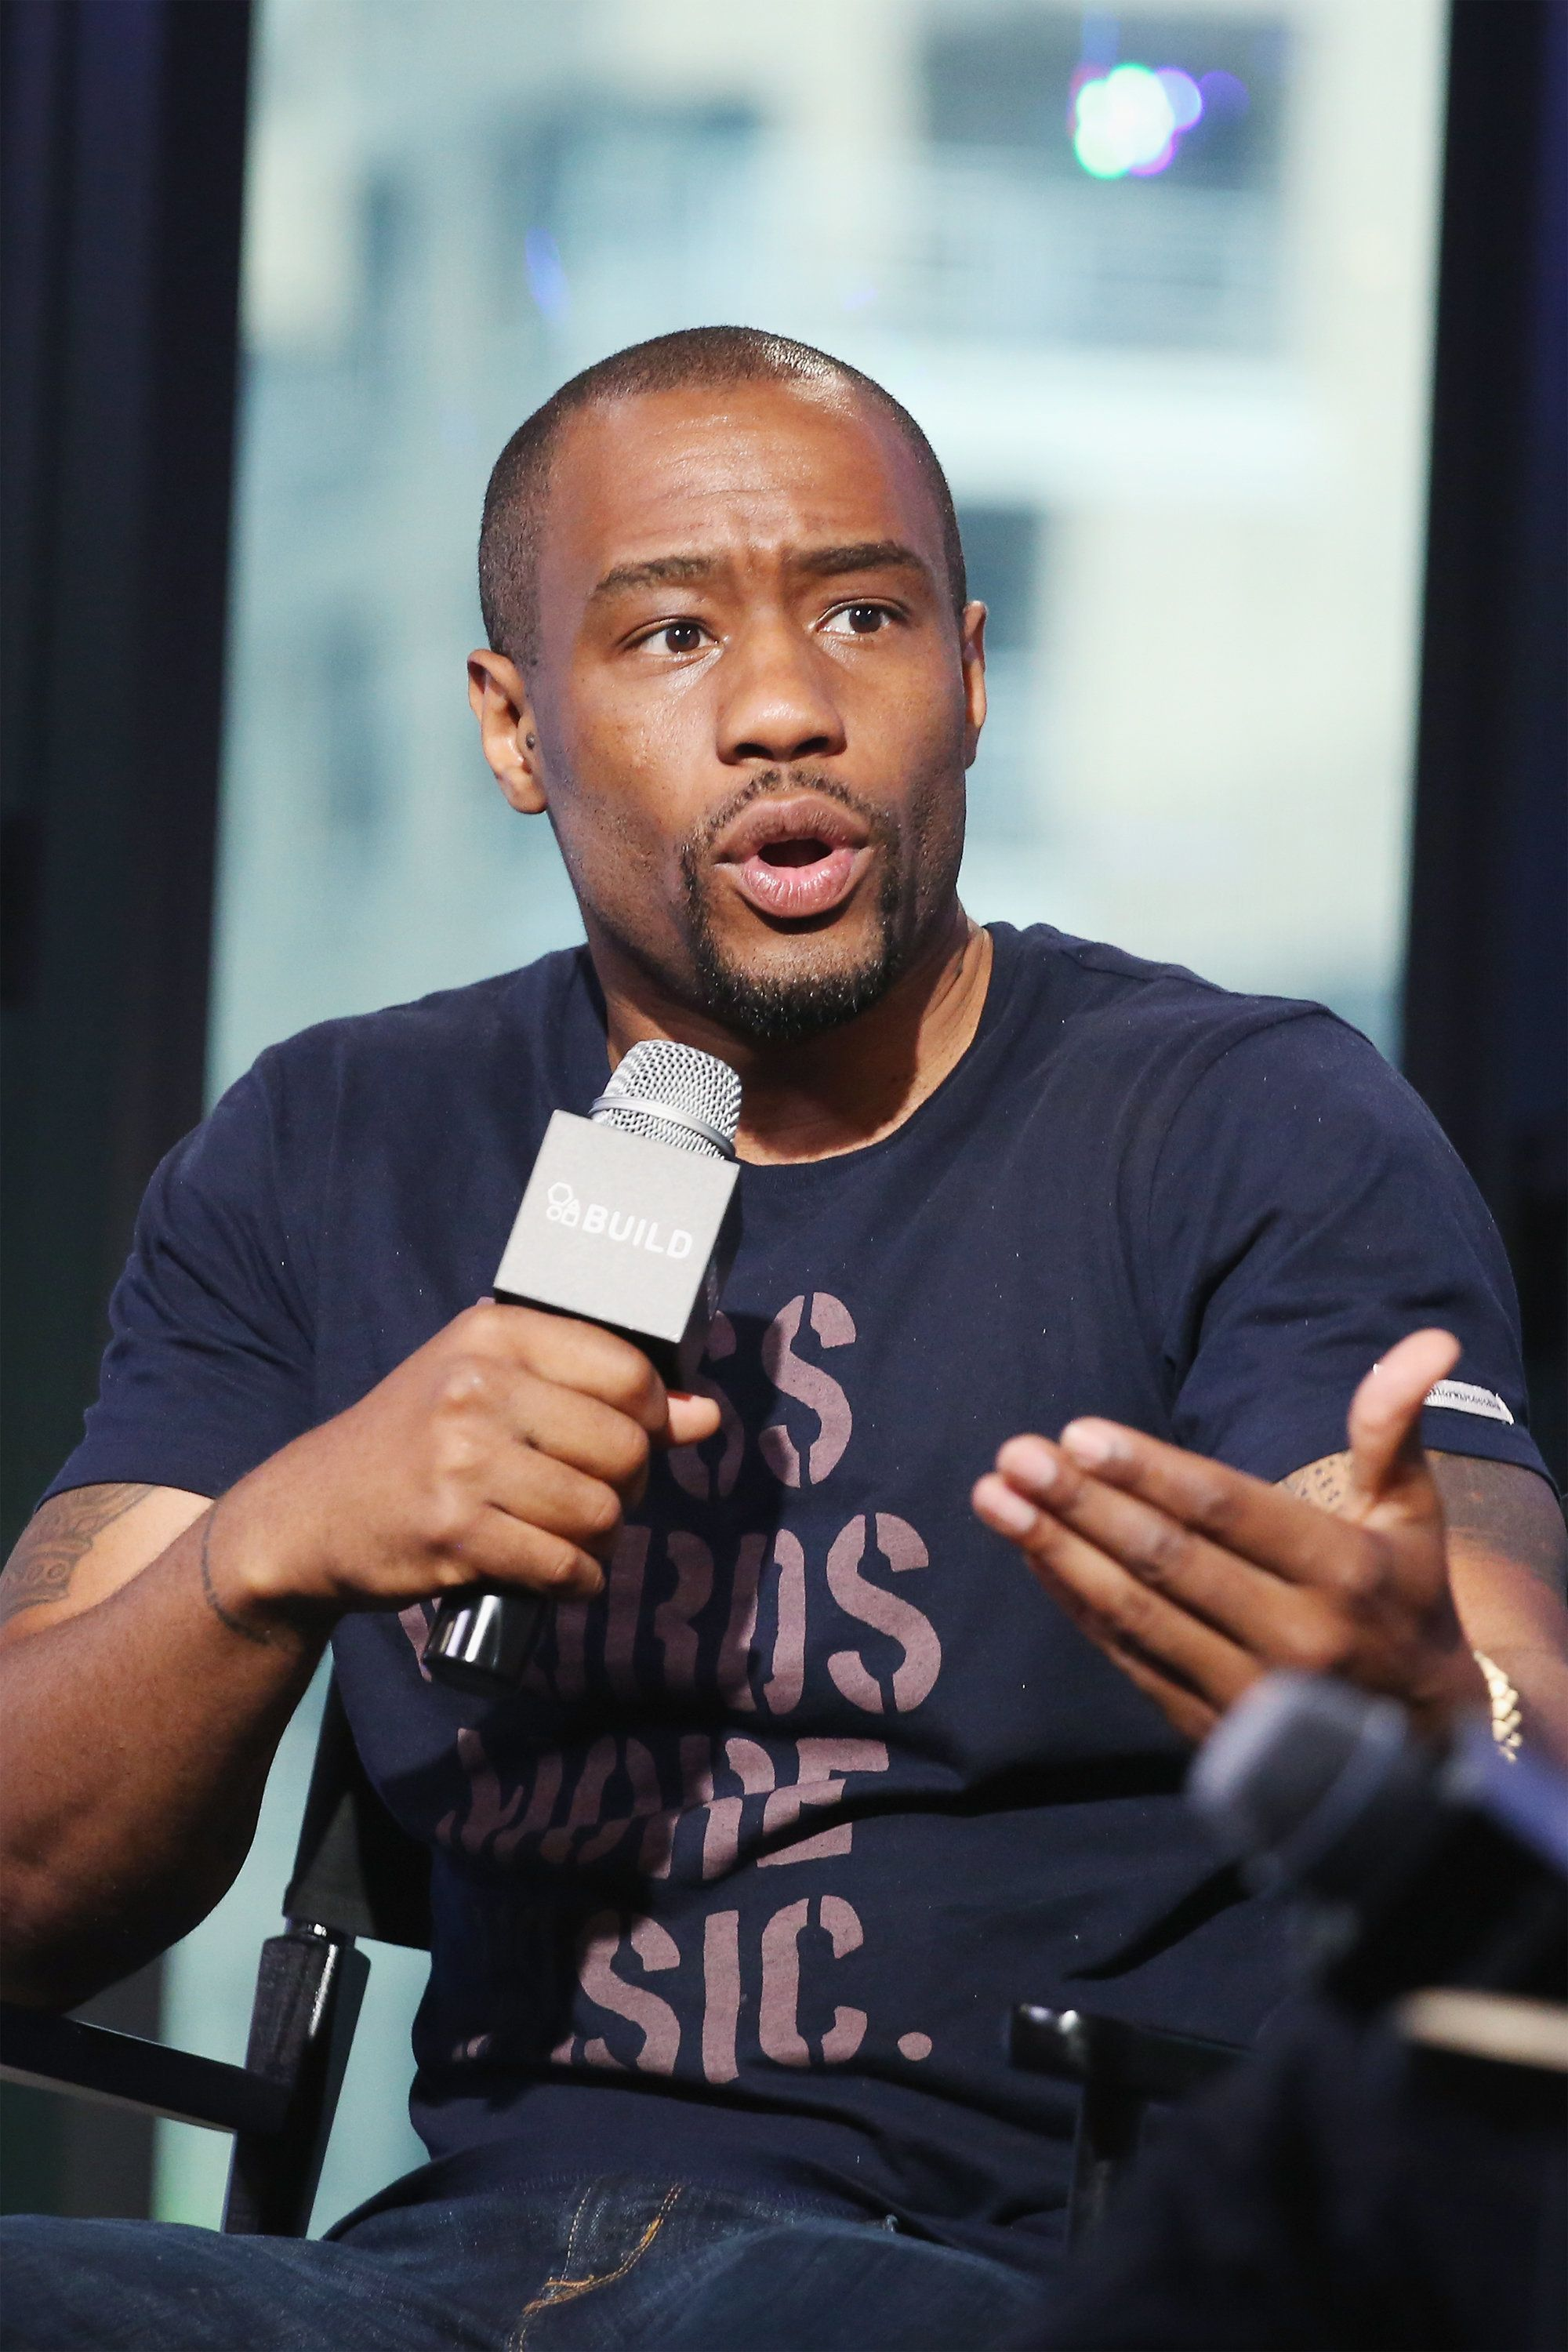 NEW YORK, NY - JULY 25:  CNN commentator and BET News host Marc Lamont Hill discusses anchoring the weekly series delivering VH1Õs pop culture spin on the hottest entertainment news and gossip at AOL HQ on July 25, 2016 in New York City.  (Photo by Mireya Acierto/FilmMagic)